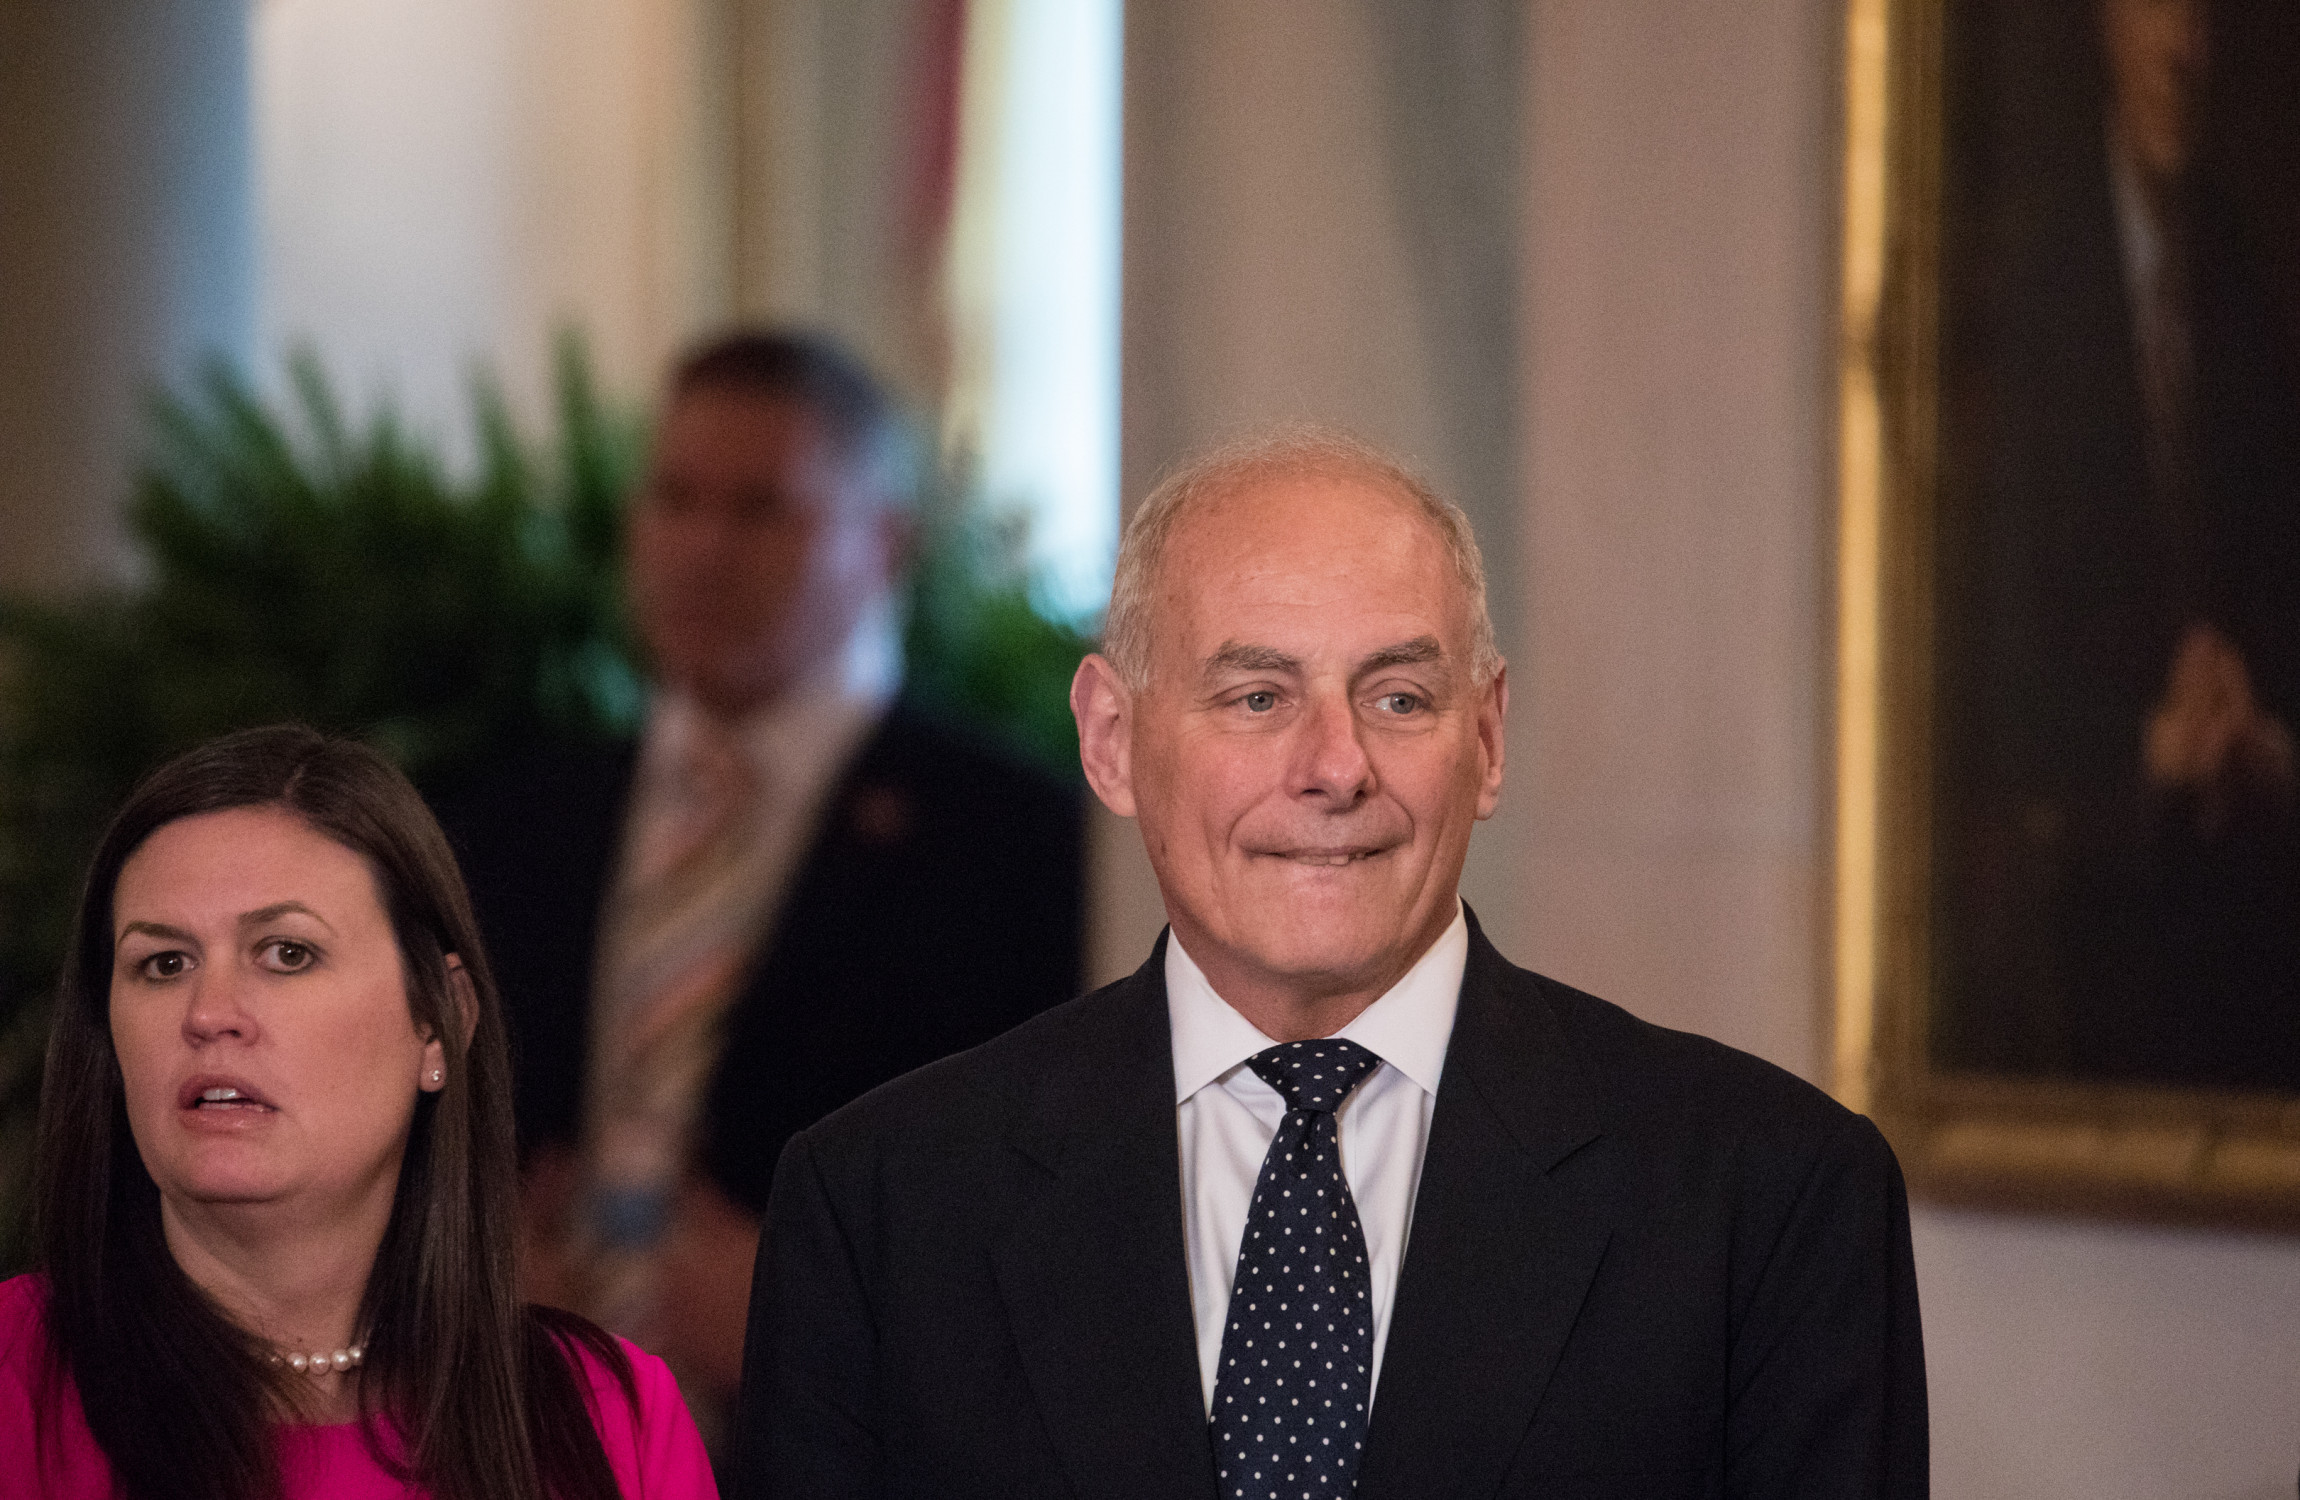 White House Chief of Staff Kelly dismisses quitting rumors